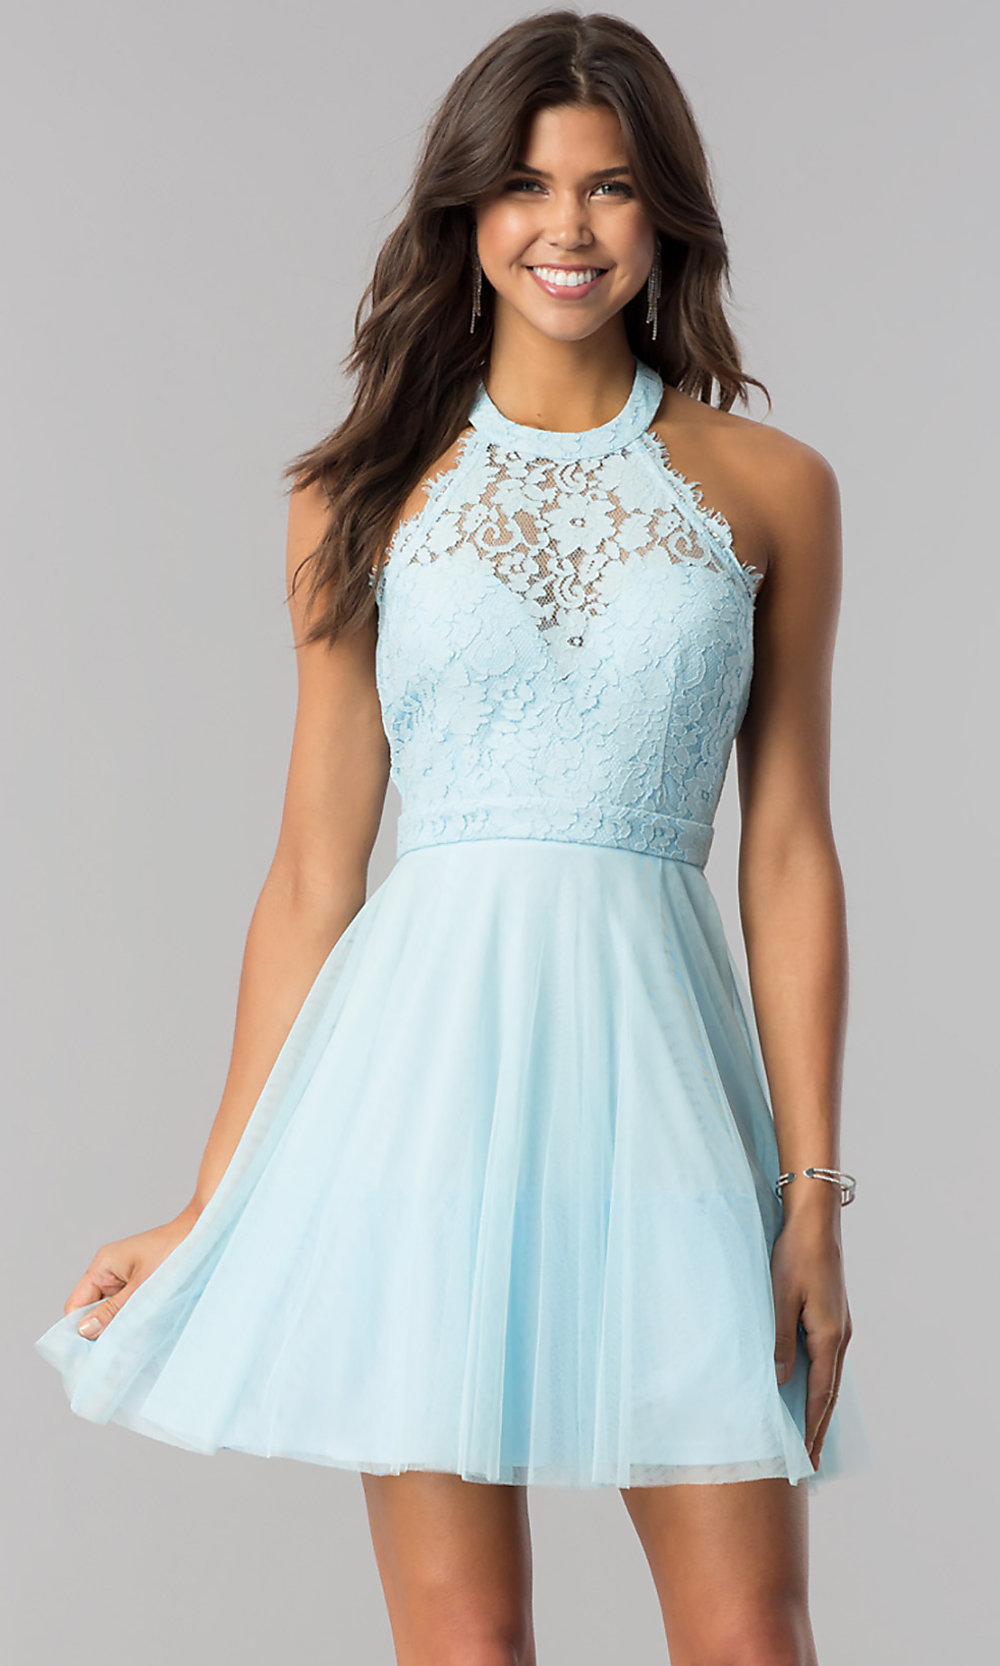 1000+ images about Halter neck dresses on Pinterest ...